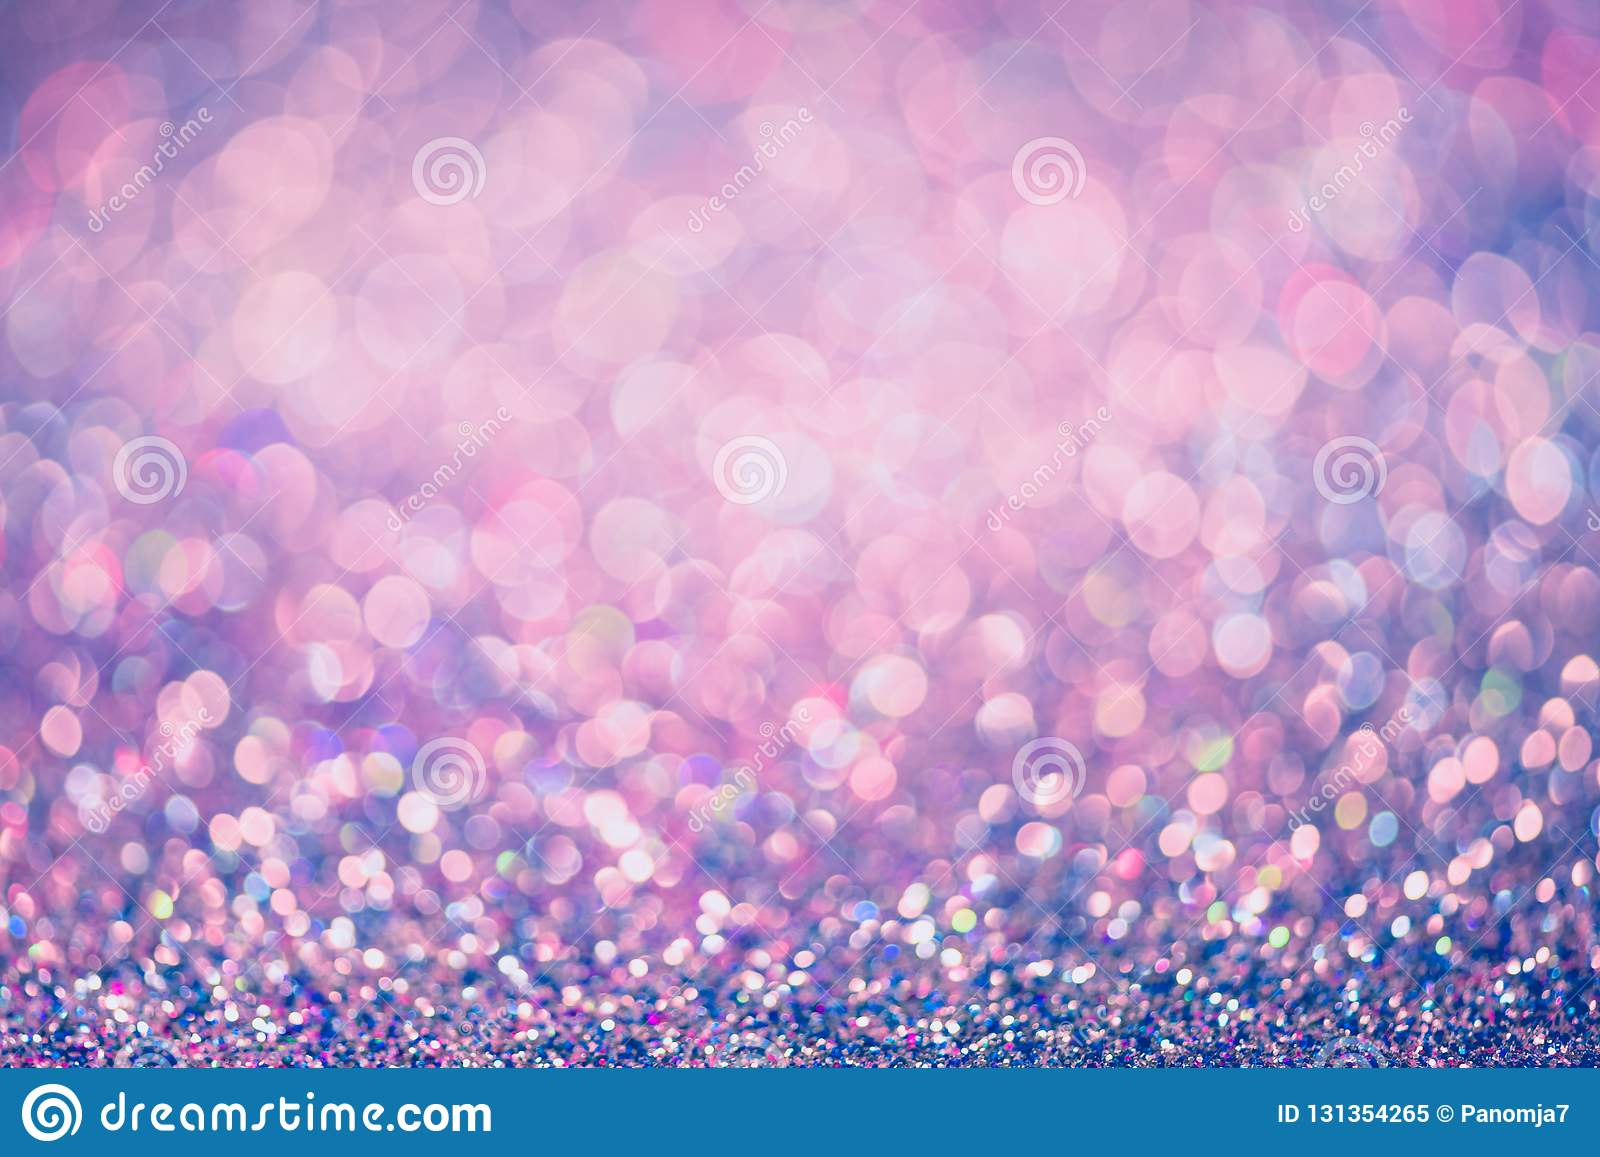 glitter gold bokeh Colorfull Blurred abstract background for birthday, anniversary, wedding, new year eve or Christmas